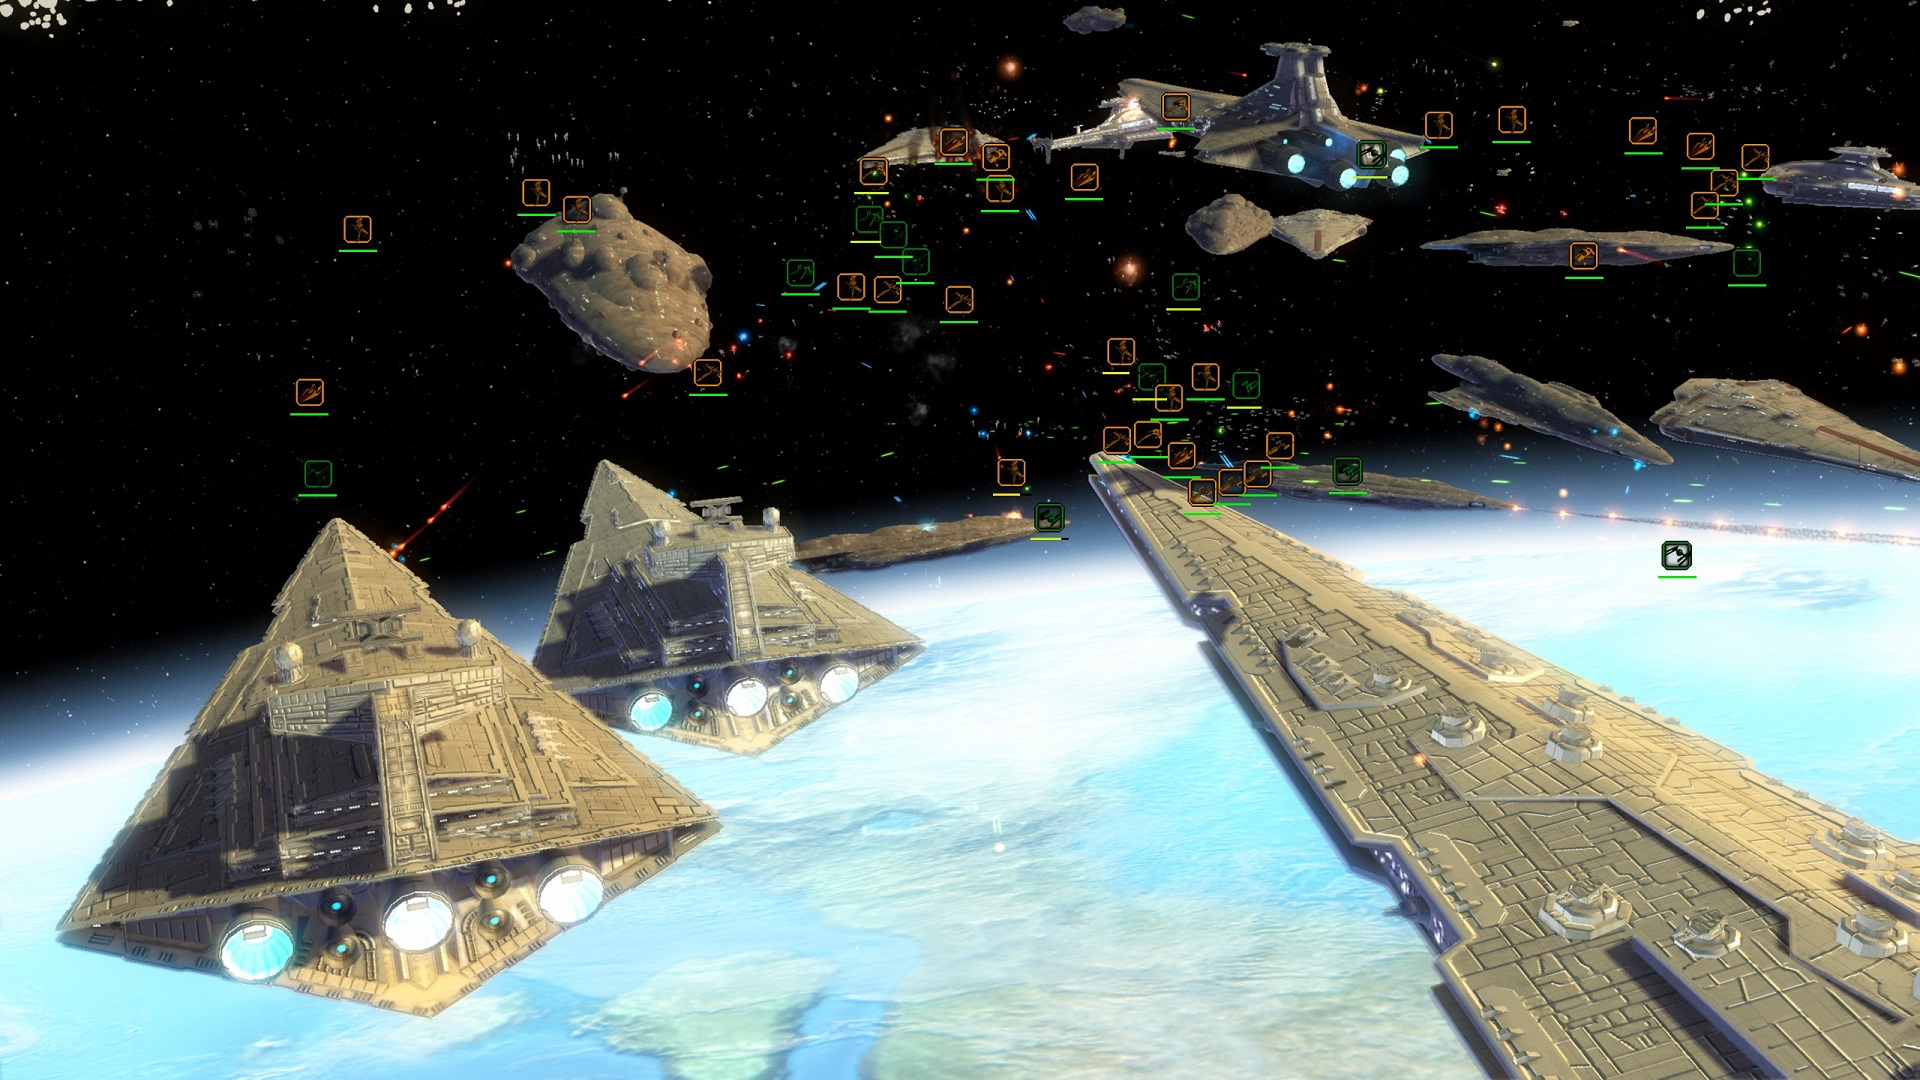 The best Star Wars game is still getting updates, 15 years later